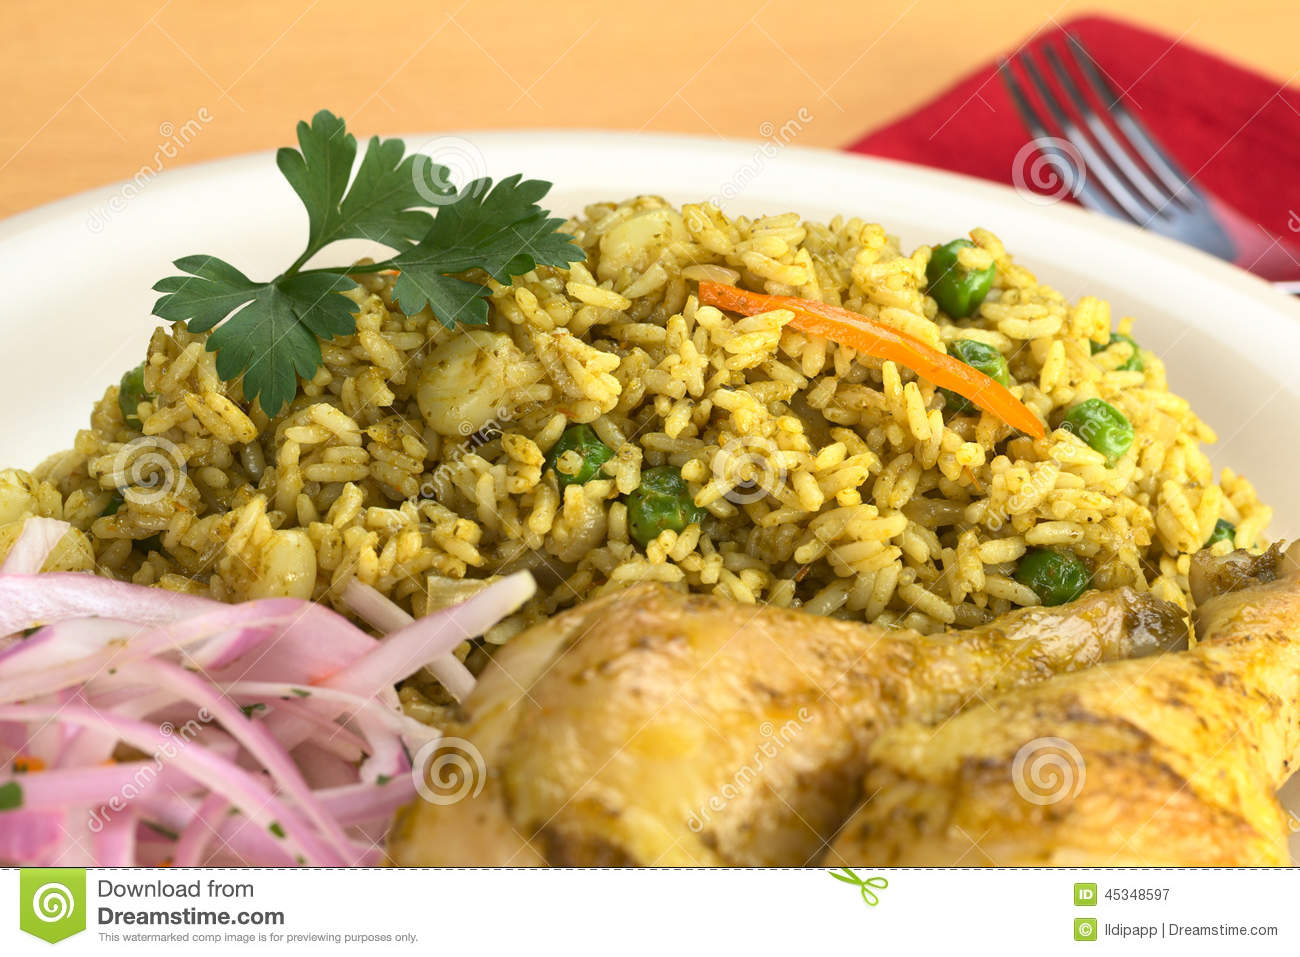 Peruvian Arroz Con Pollo (Rice With Chicken) Stock Photo - Image ...